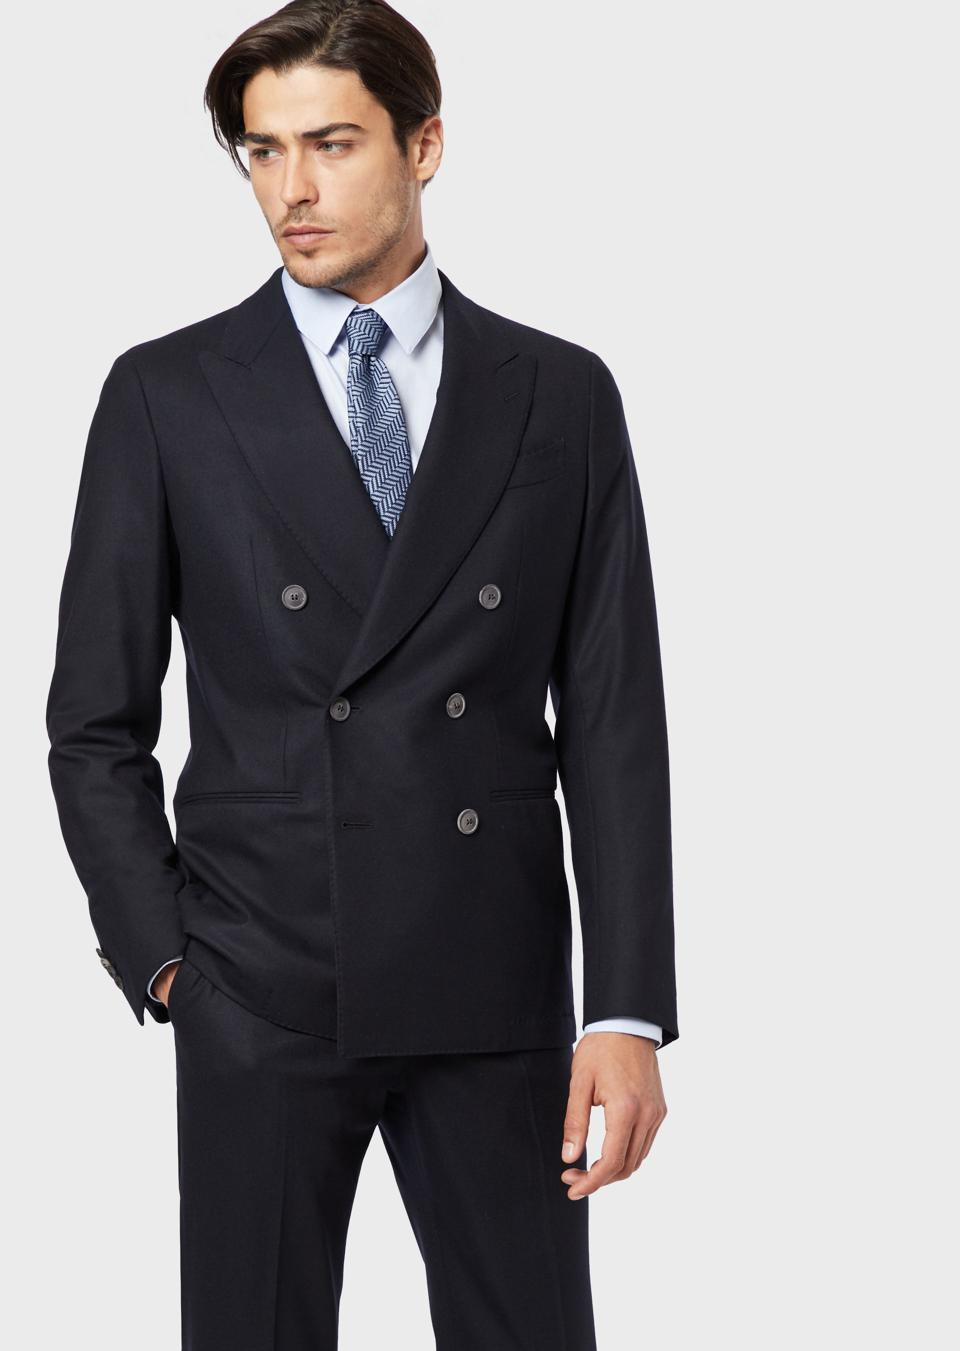 Formal and Daily Jacket Men/'s Dark Blue Double Breastered Slim Fit Casual All Seasons Jacket